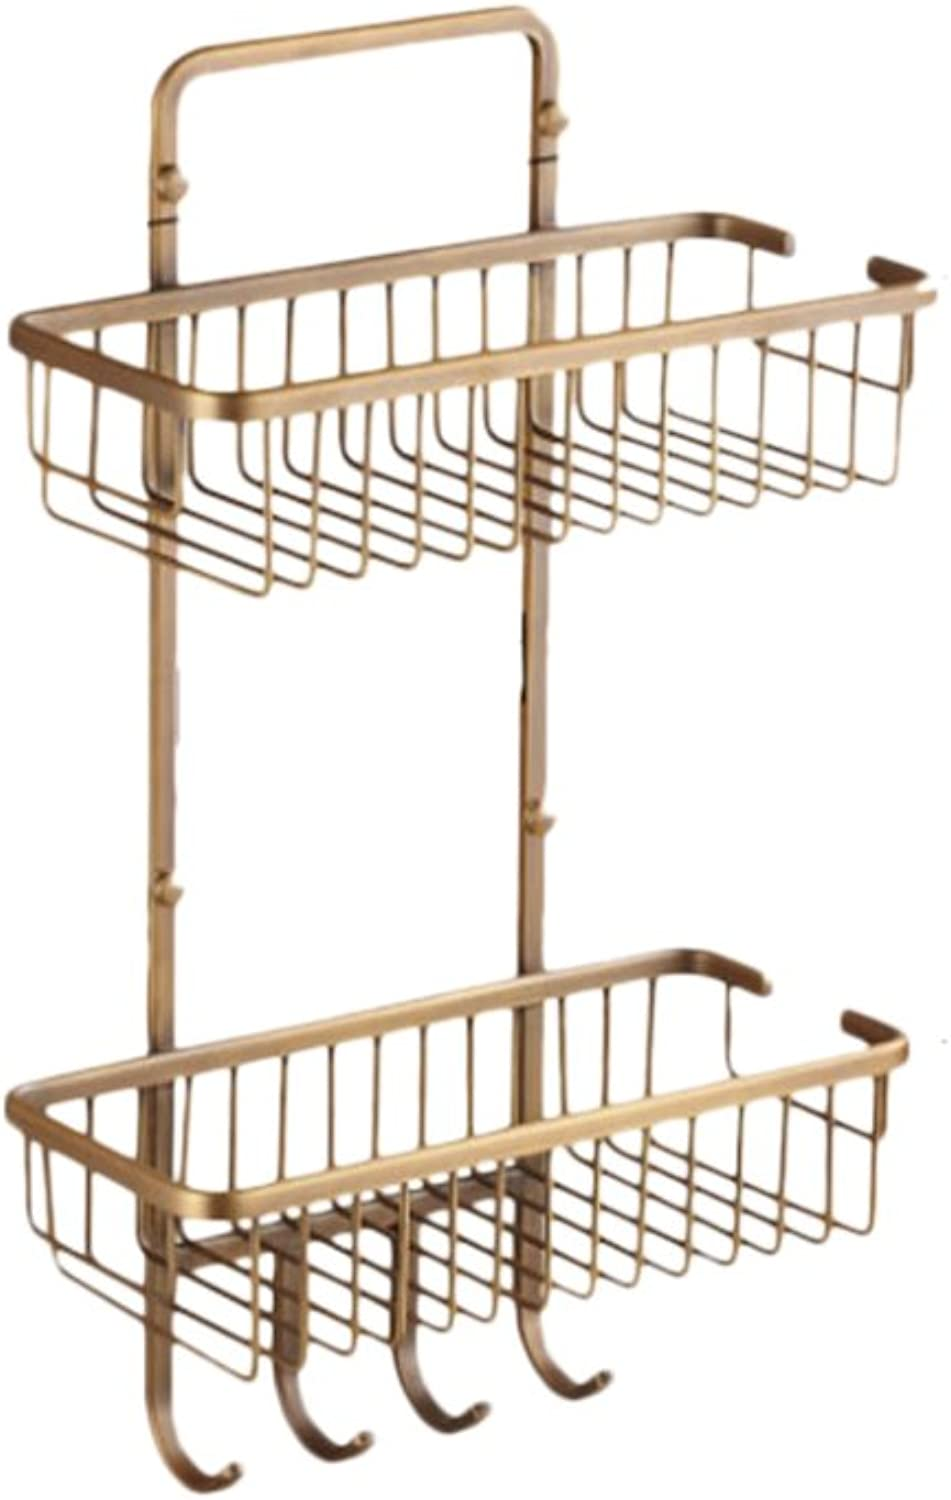 Bathroom Rack, Antique Copper Square Double Coat Hanger Basket Bathroom Hardware Accessories golden